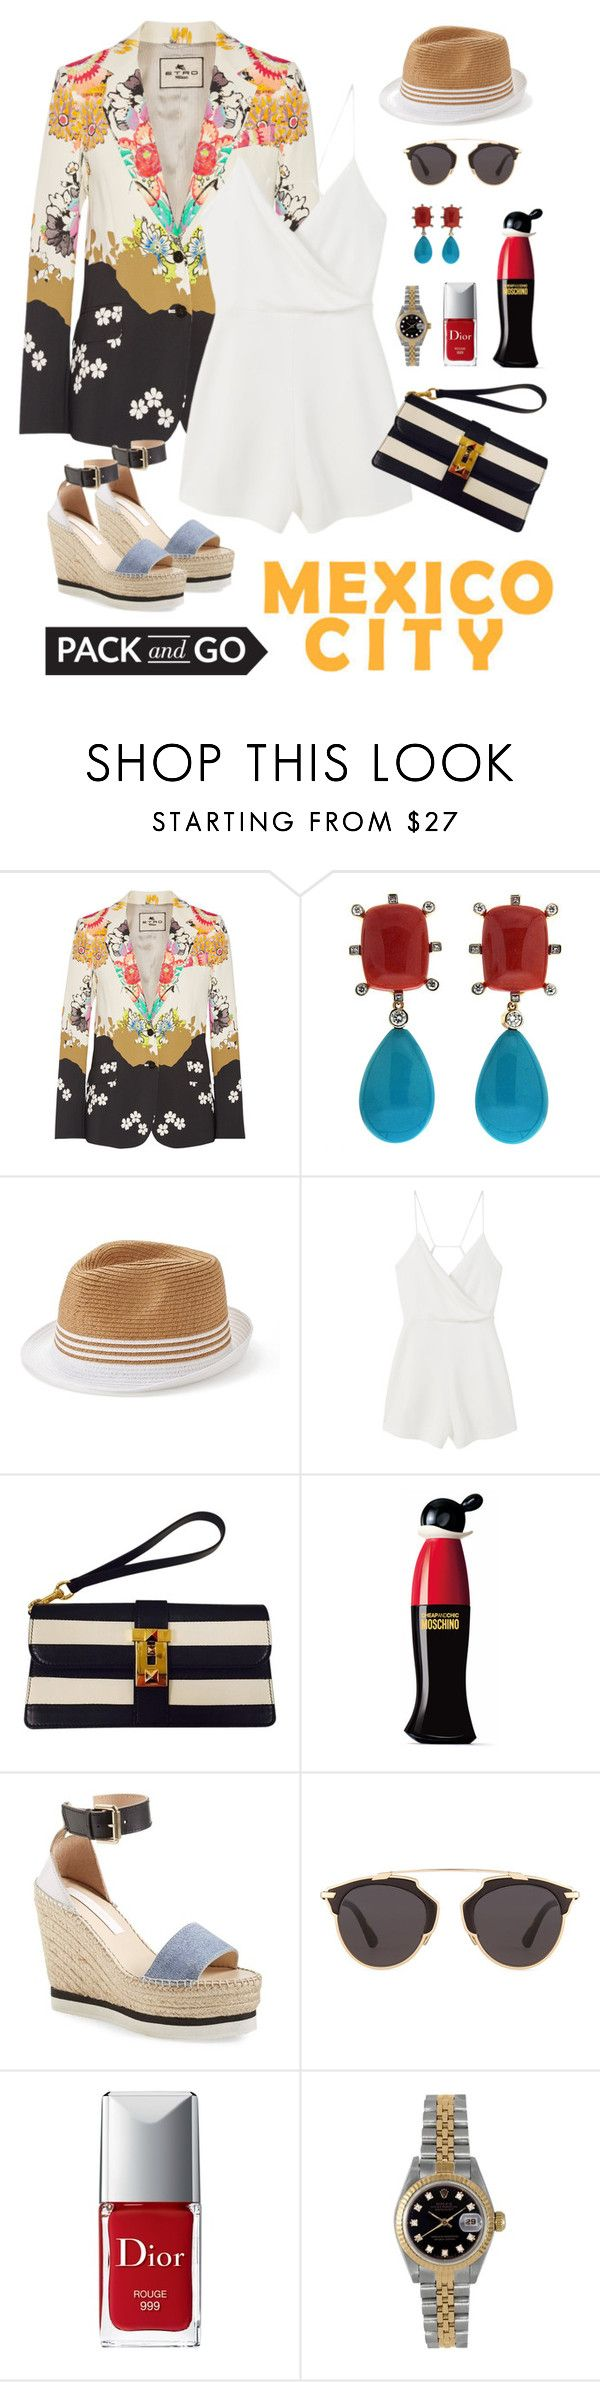 """""""Mexico City"""" by staggemeier-amaral ❤ liked on Polyvore featuring Etro, Valentin Magro, SONOMA Goods for Life, MANGO, Valentino, Moschino, See by Chloé, Christian Dior, Rolex and blazer"""